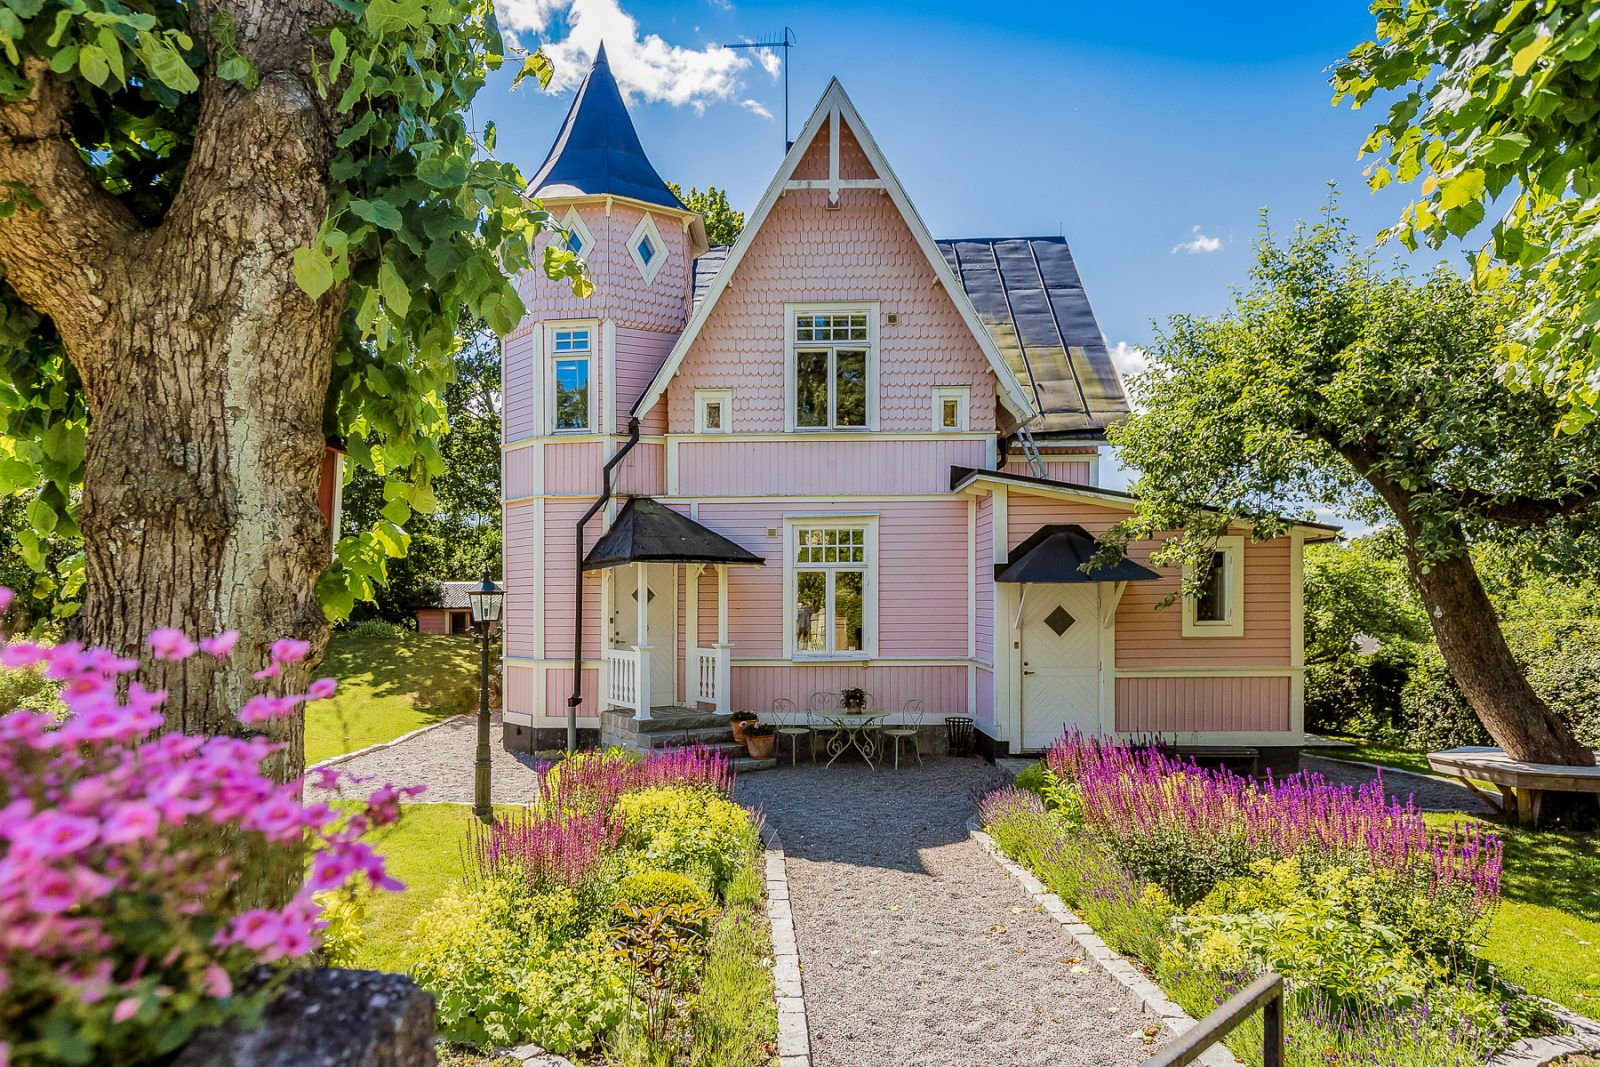 Home Design Pink Dream House For Sale In Sweden